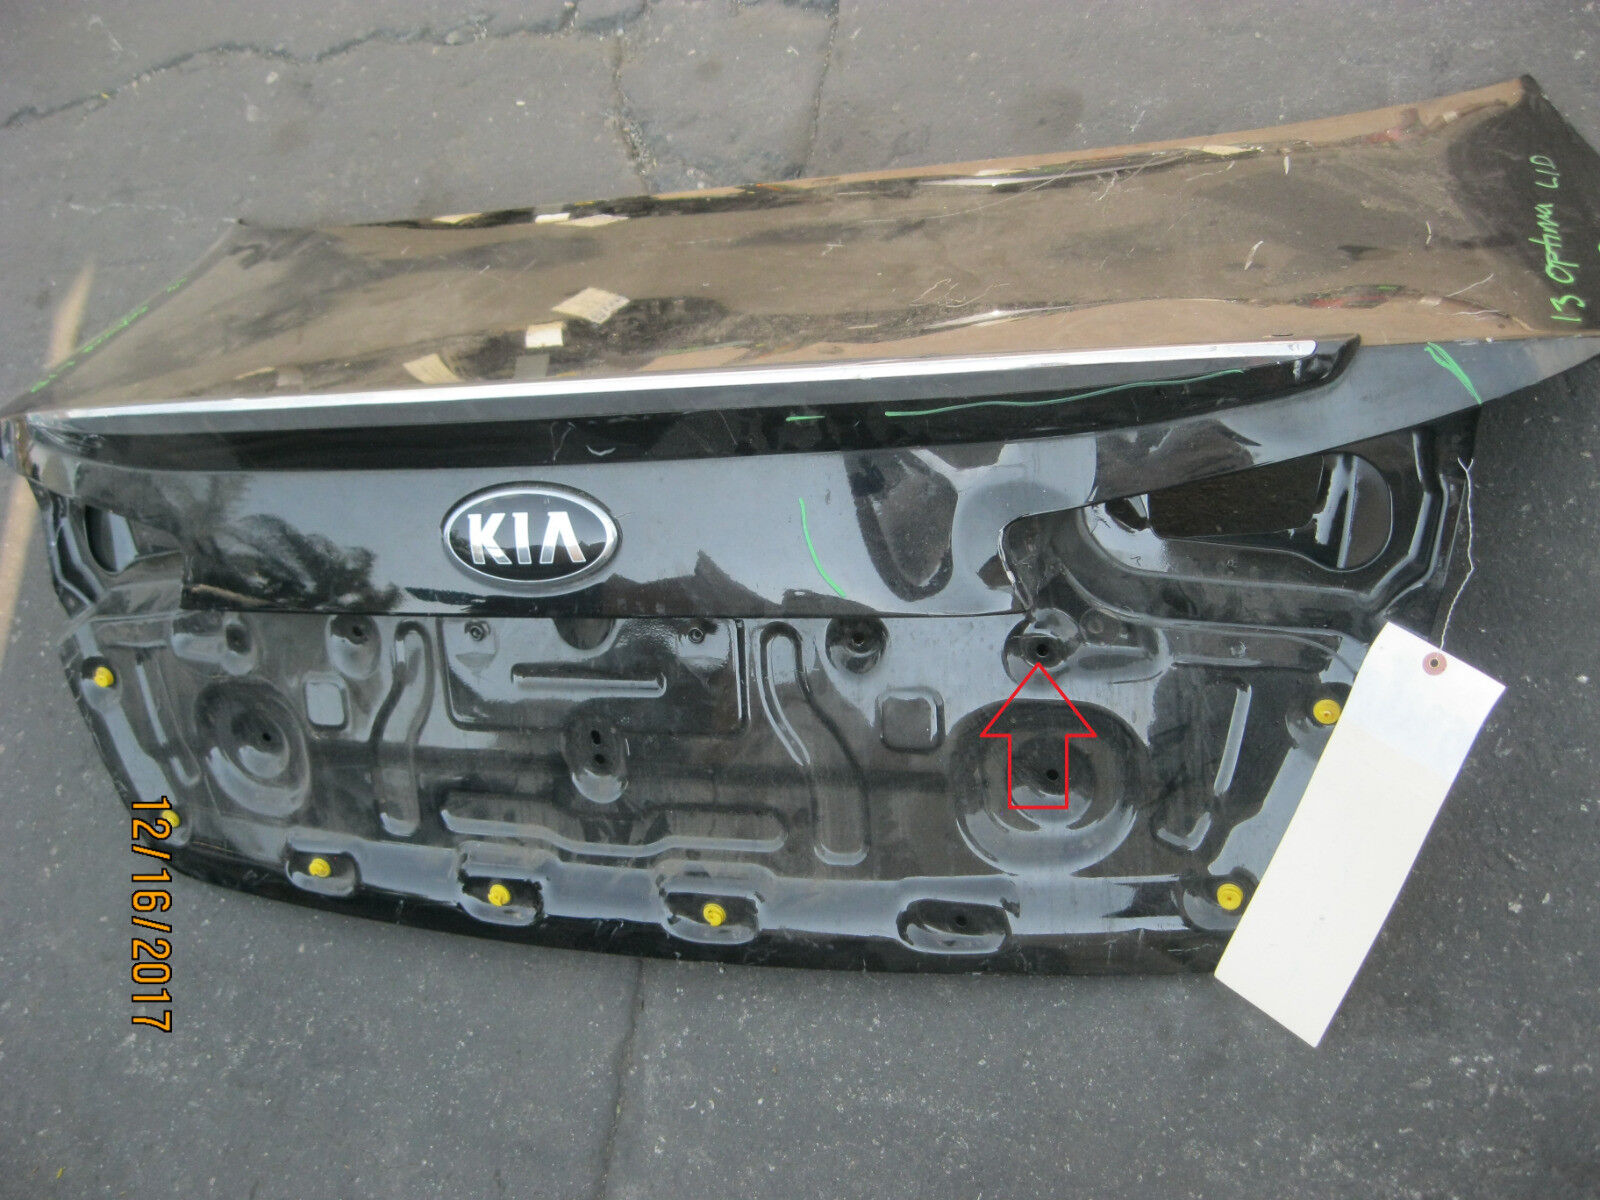 Used Kia Trunk Lids And Related Parts For Sale Page 7 Optima Rear Spoiler Lid Oem Stock 11 12 2011 2013 66186